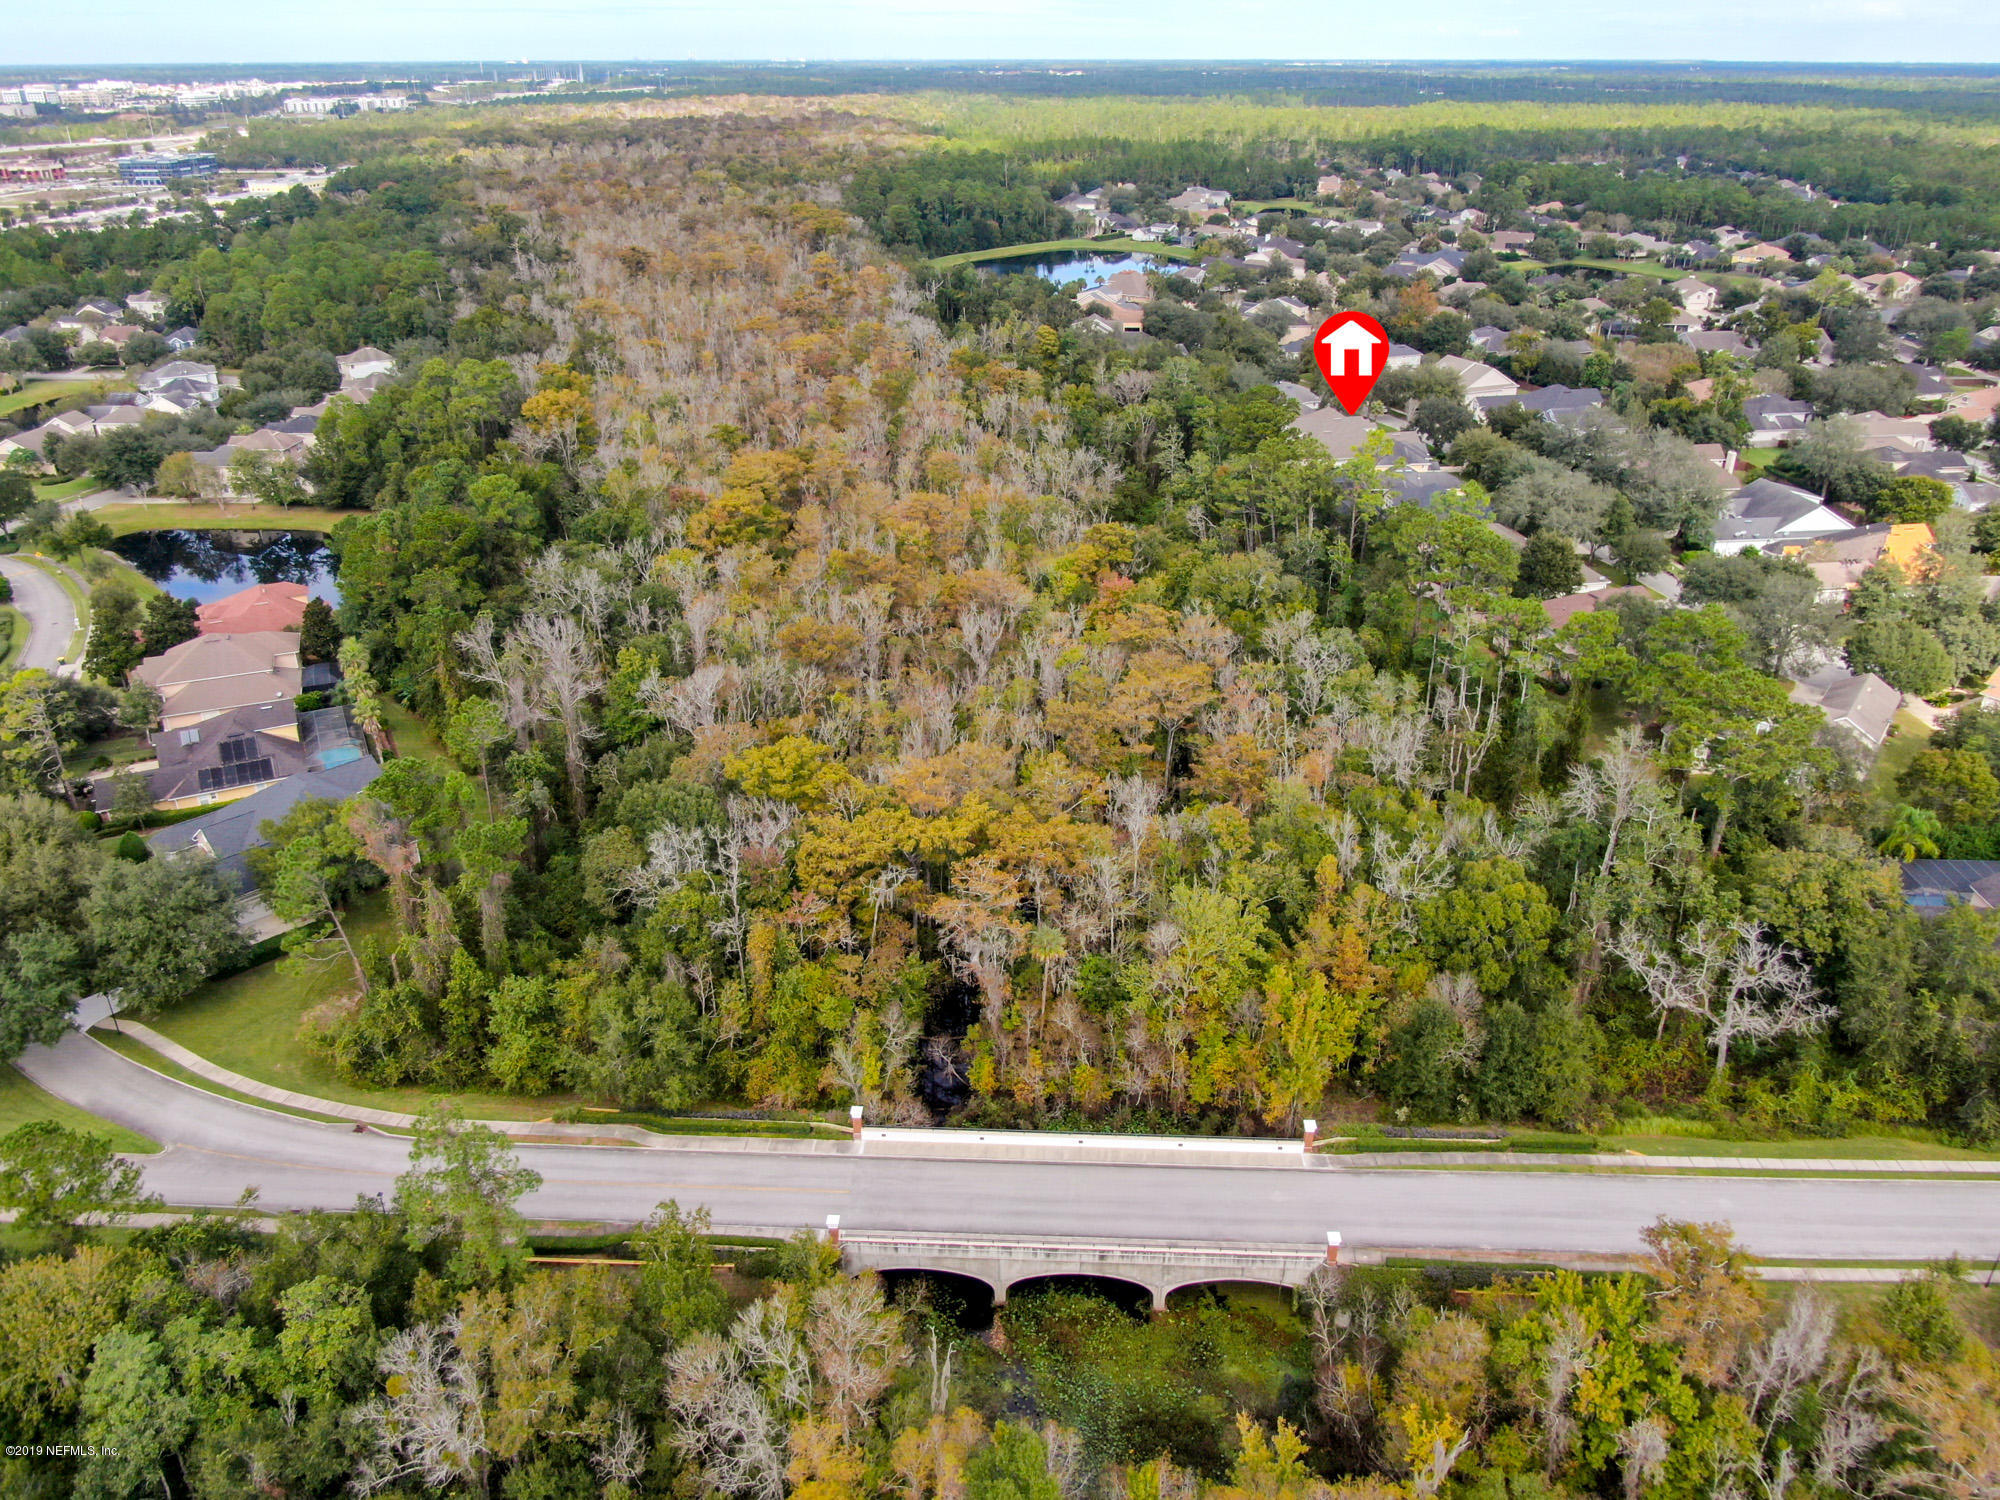 7950 MONTEREY BAY, JACKSONVILLE, FLORIDA 32256, 5 Bedrooms Bedrooms, ,5 BathroomsBathrooms,Residential,For sale,MONTEREY BAY,1025309